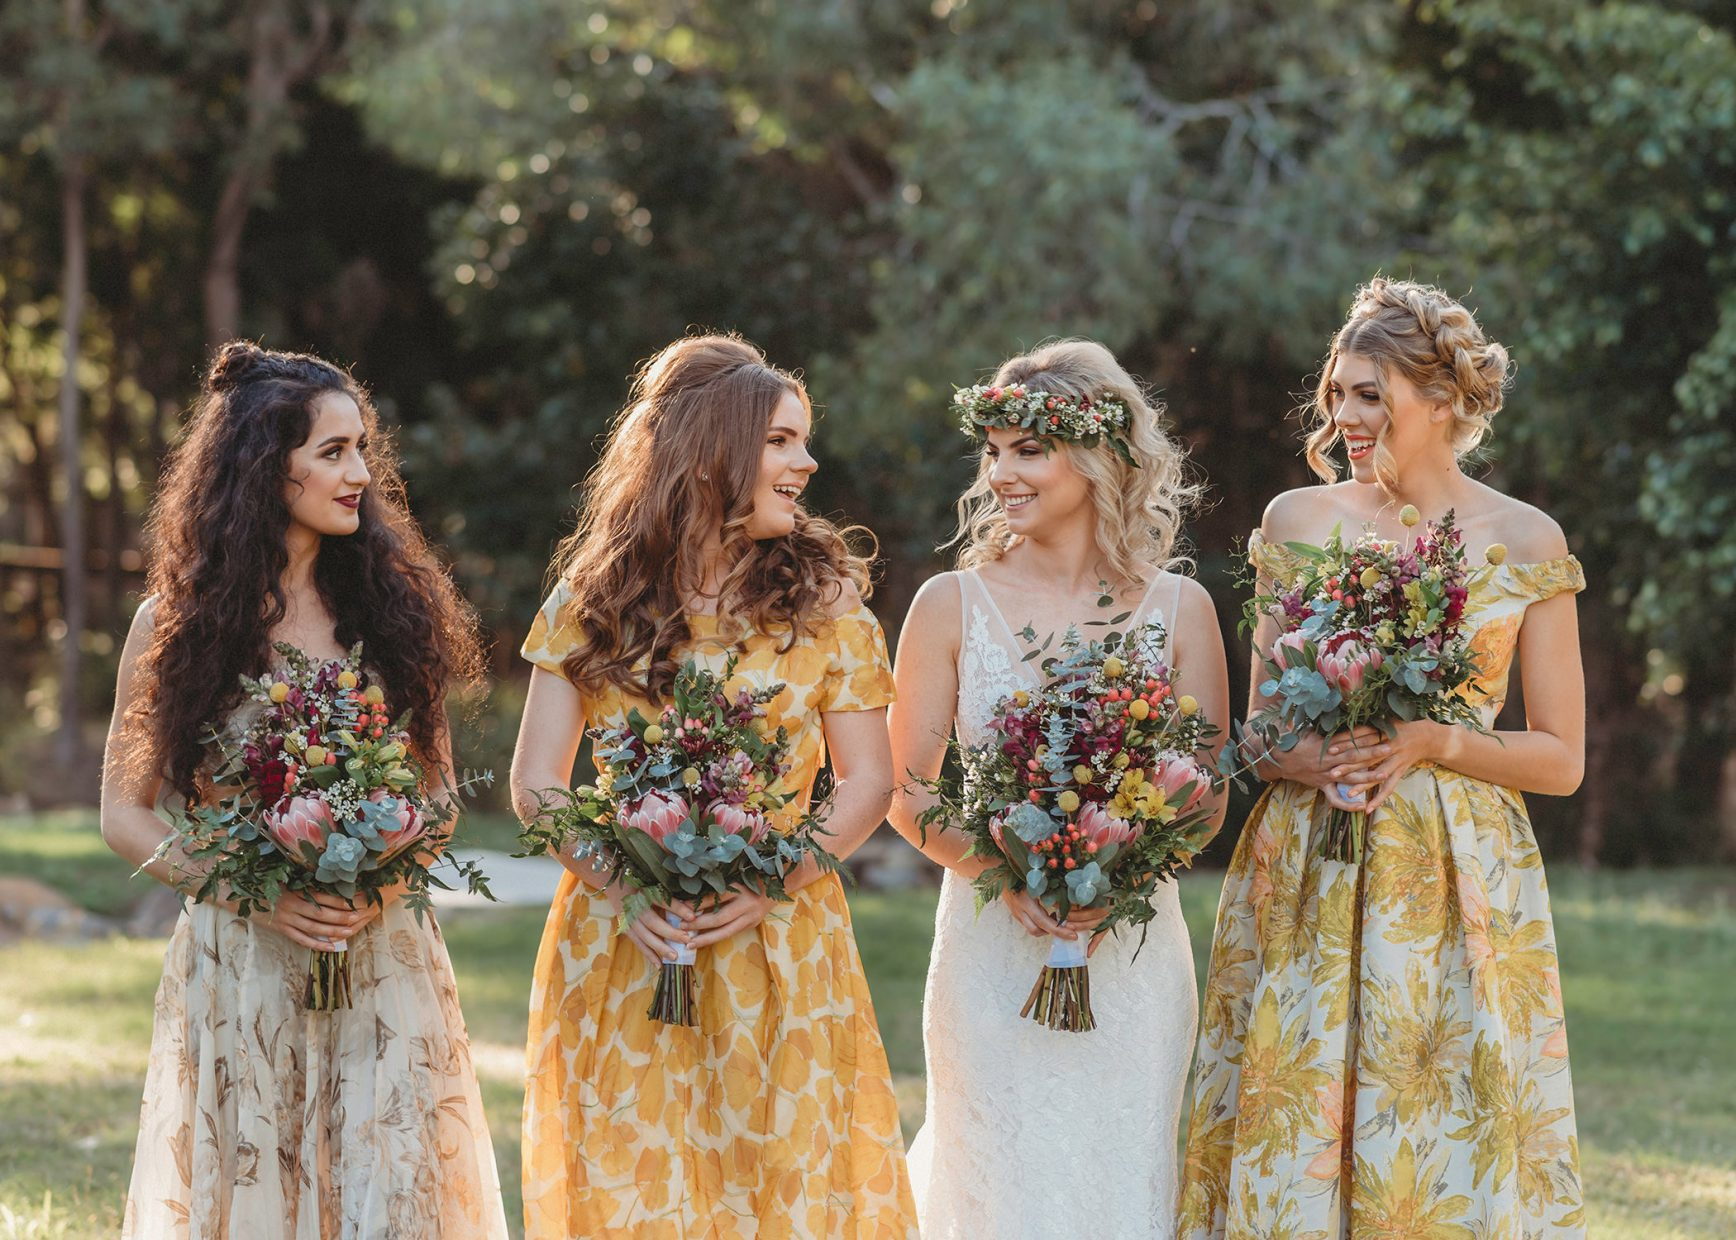 Girls wearing vintage dresses and carrying beautiful bouquets